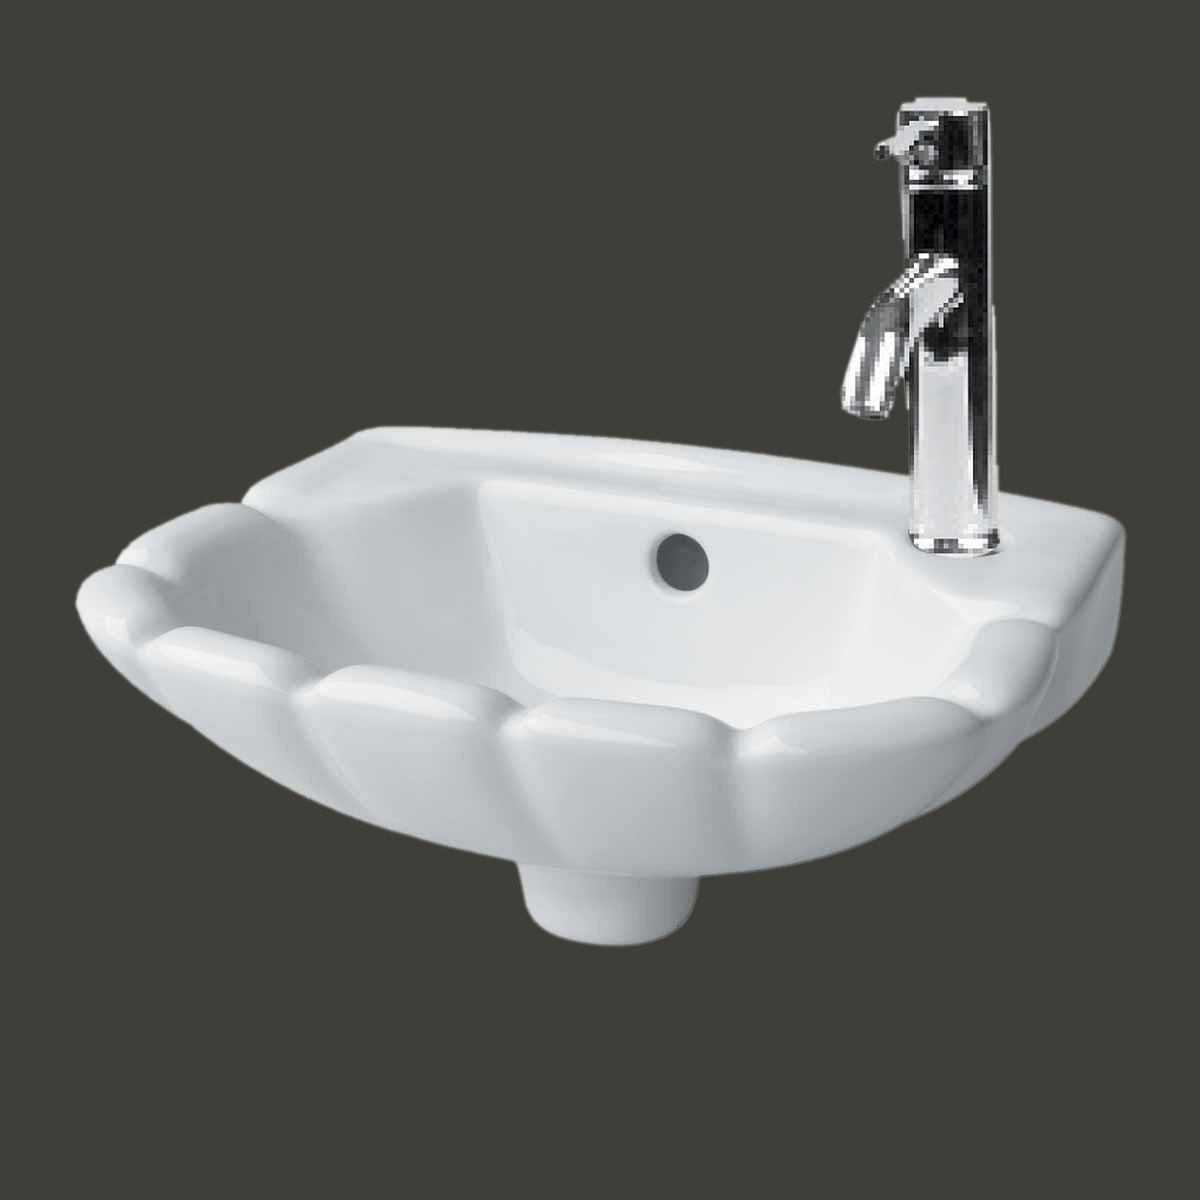 Small wall mounted bathroom sinks -  Pre Small Wall Mount Bathroom Hung White Periwinkle 14